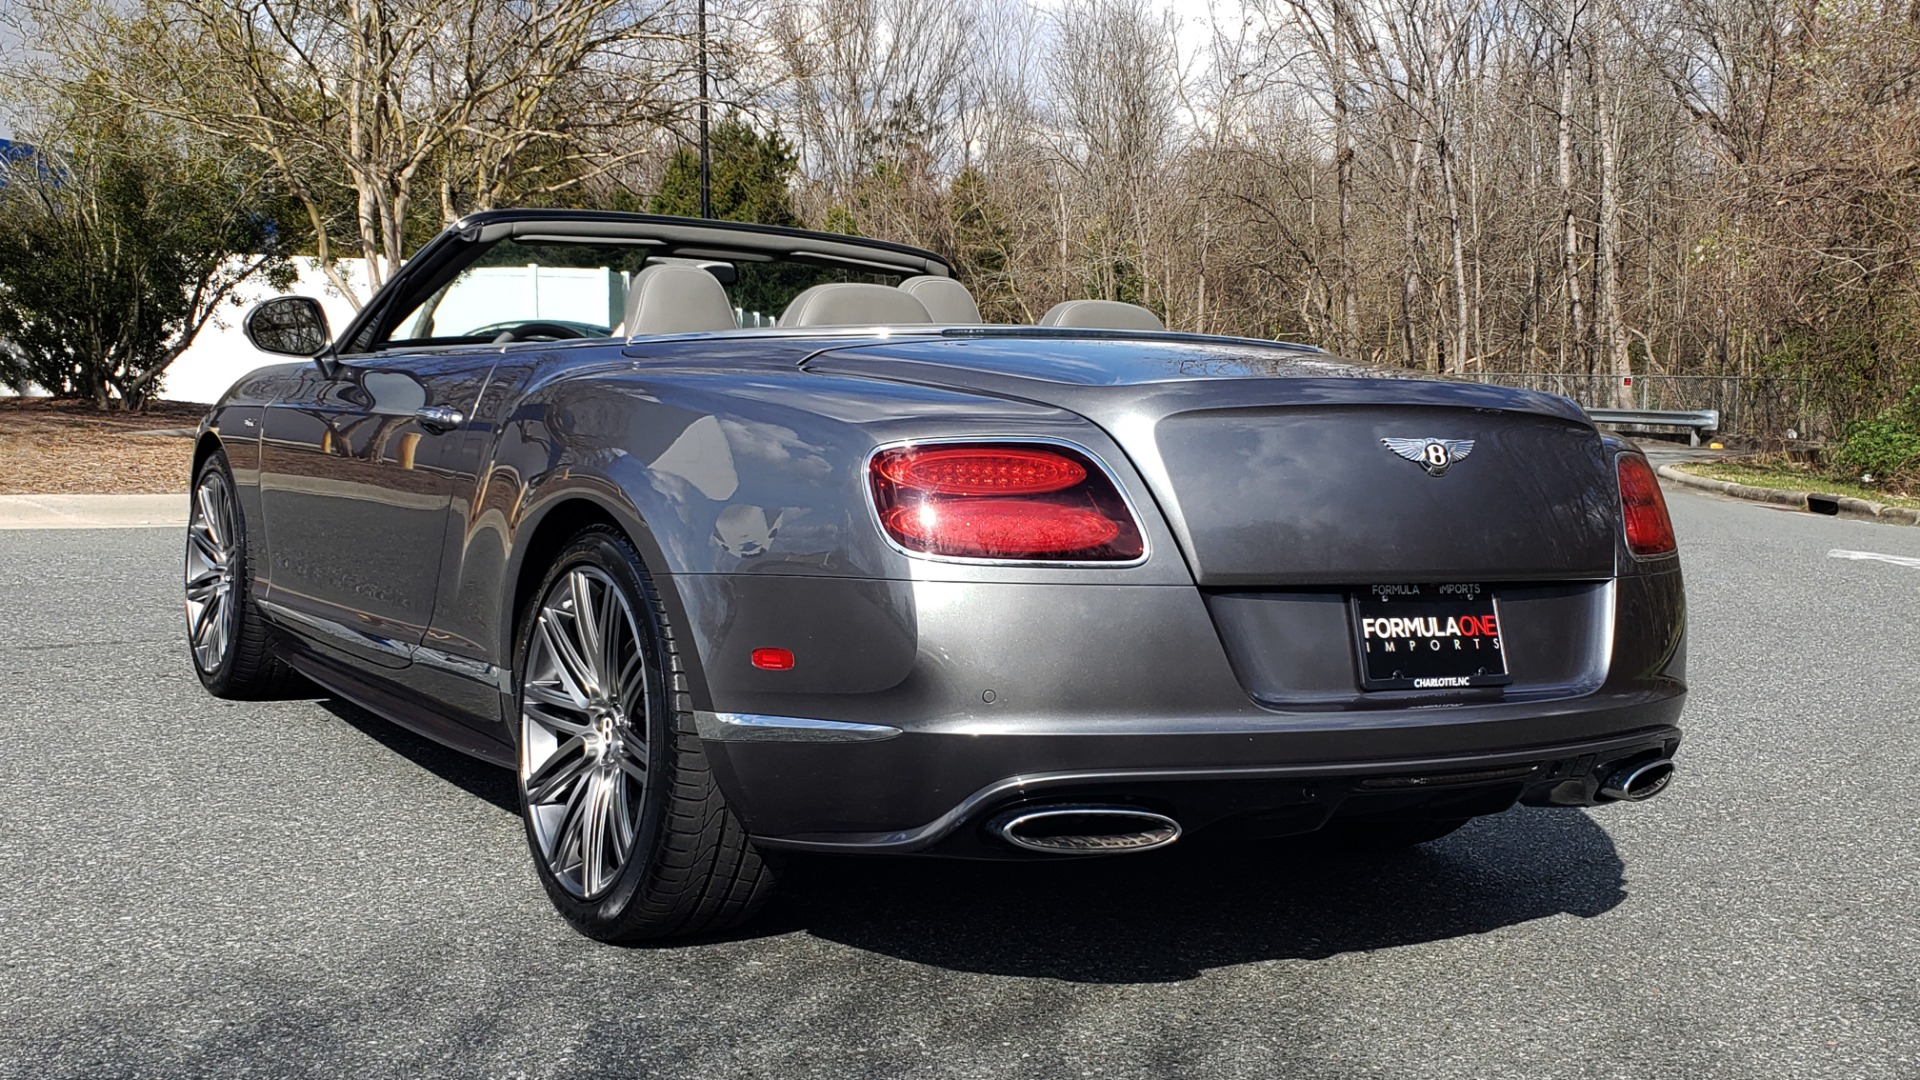 Used 2015 Bentley CONTINENTAL SPEED CONV / 6.0L W12 / NAV / VENT SEATS / REARVIEW for sale Sold at Formula Imports in Charlotte NC 28227 7